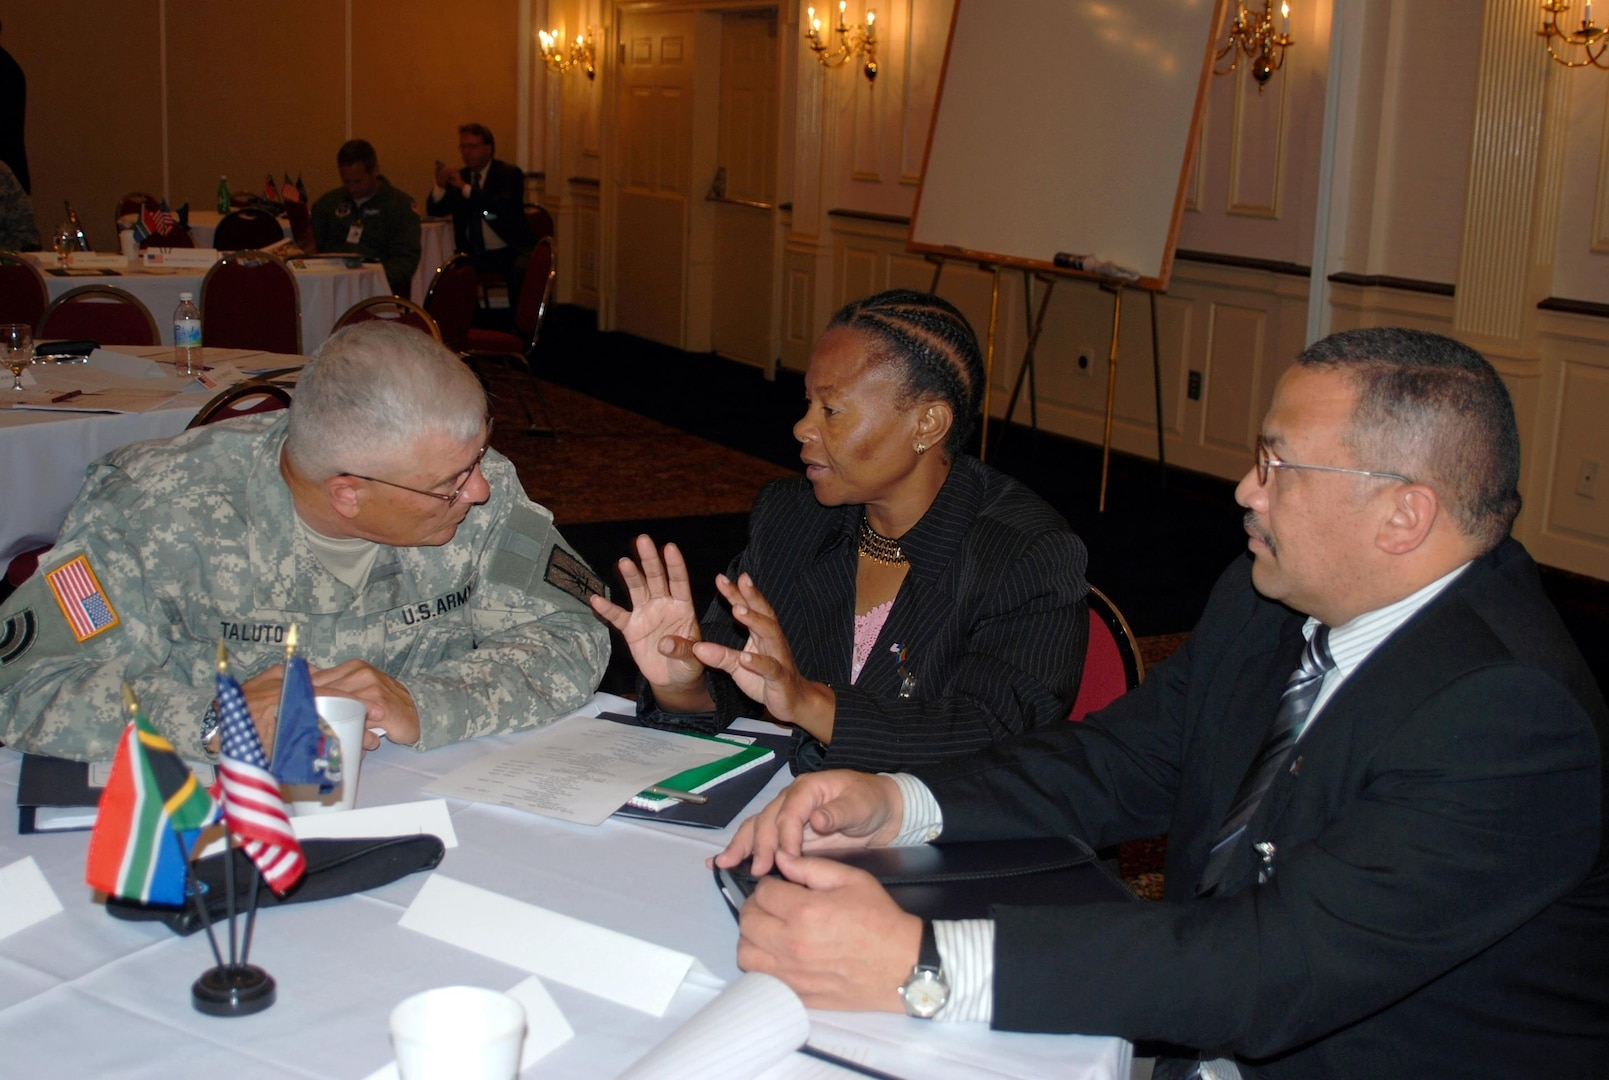 New York State Adjutant General Maj. Gen. Joseph Taluto speaks with Ms. Susan Shabangu, the South Africa Deputy Minister for Safety and Security during the National Guard's State Partnership Conference in Latham on September 4. Leaders from the South African Defense Forces and New York National Guard met to discuss emerging opportunities for military to military relations and continuing partnerships with New York's government agencies.